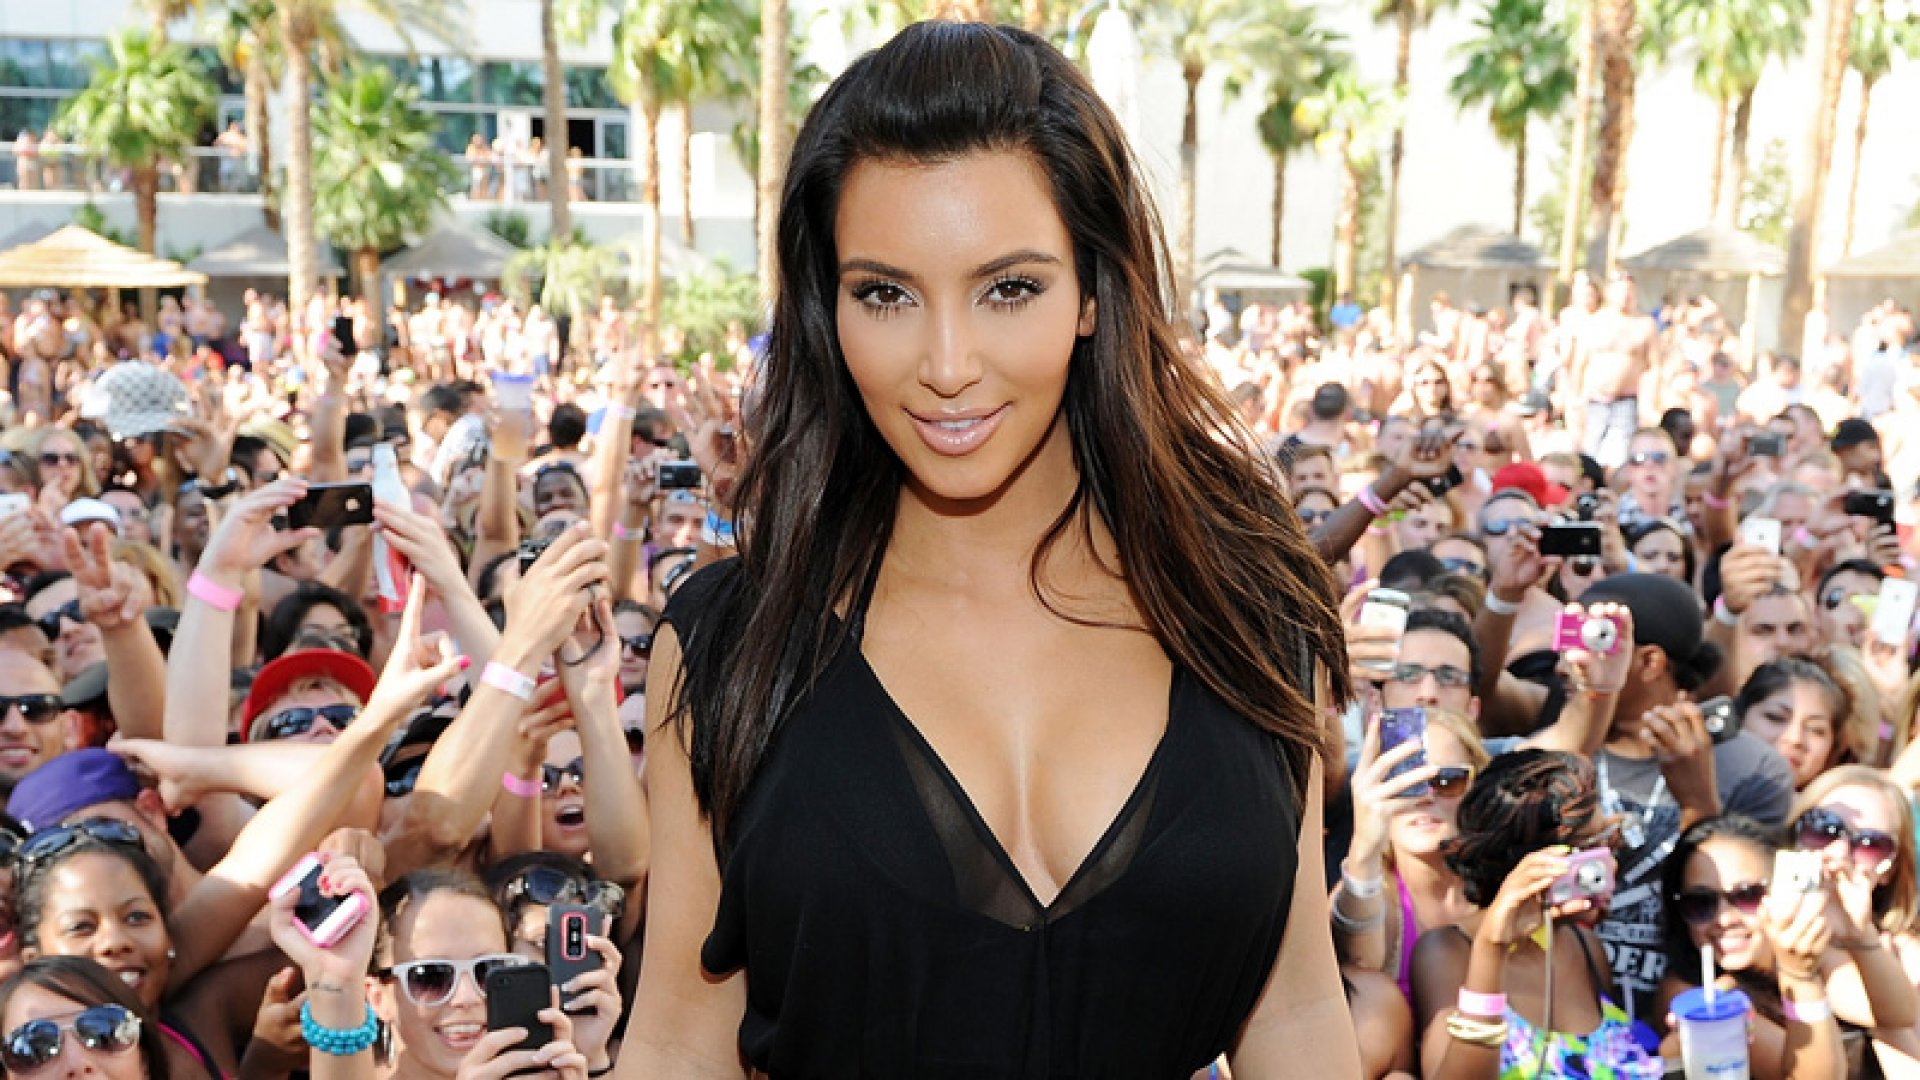 3 Surprising Lessons about Communication from Kim Kardashian